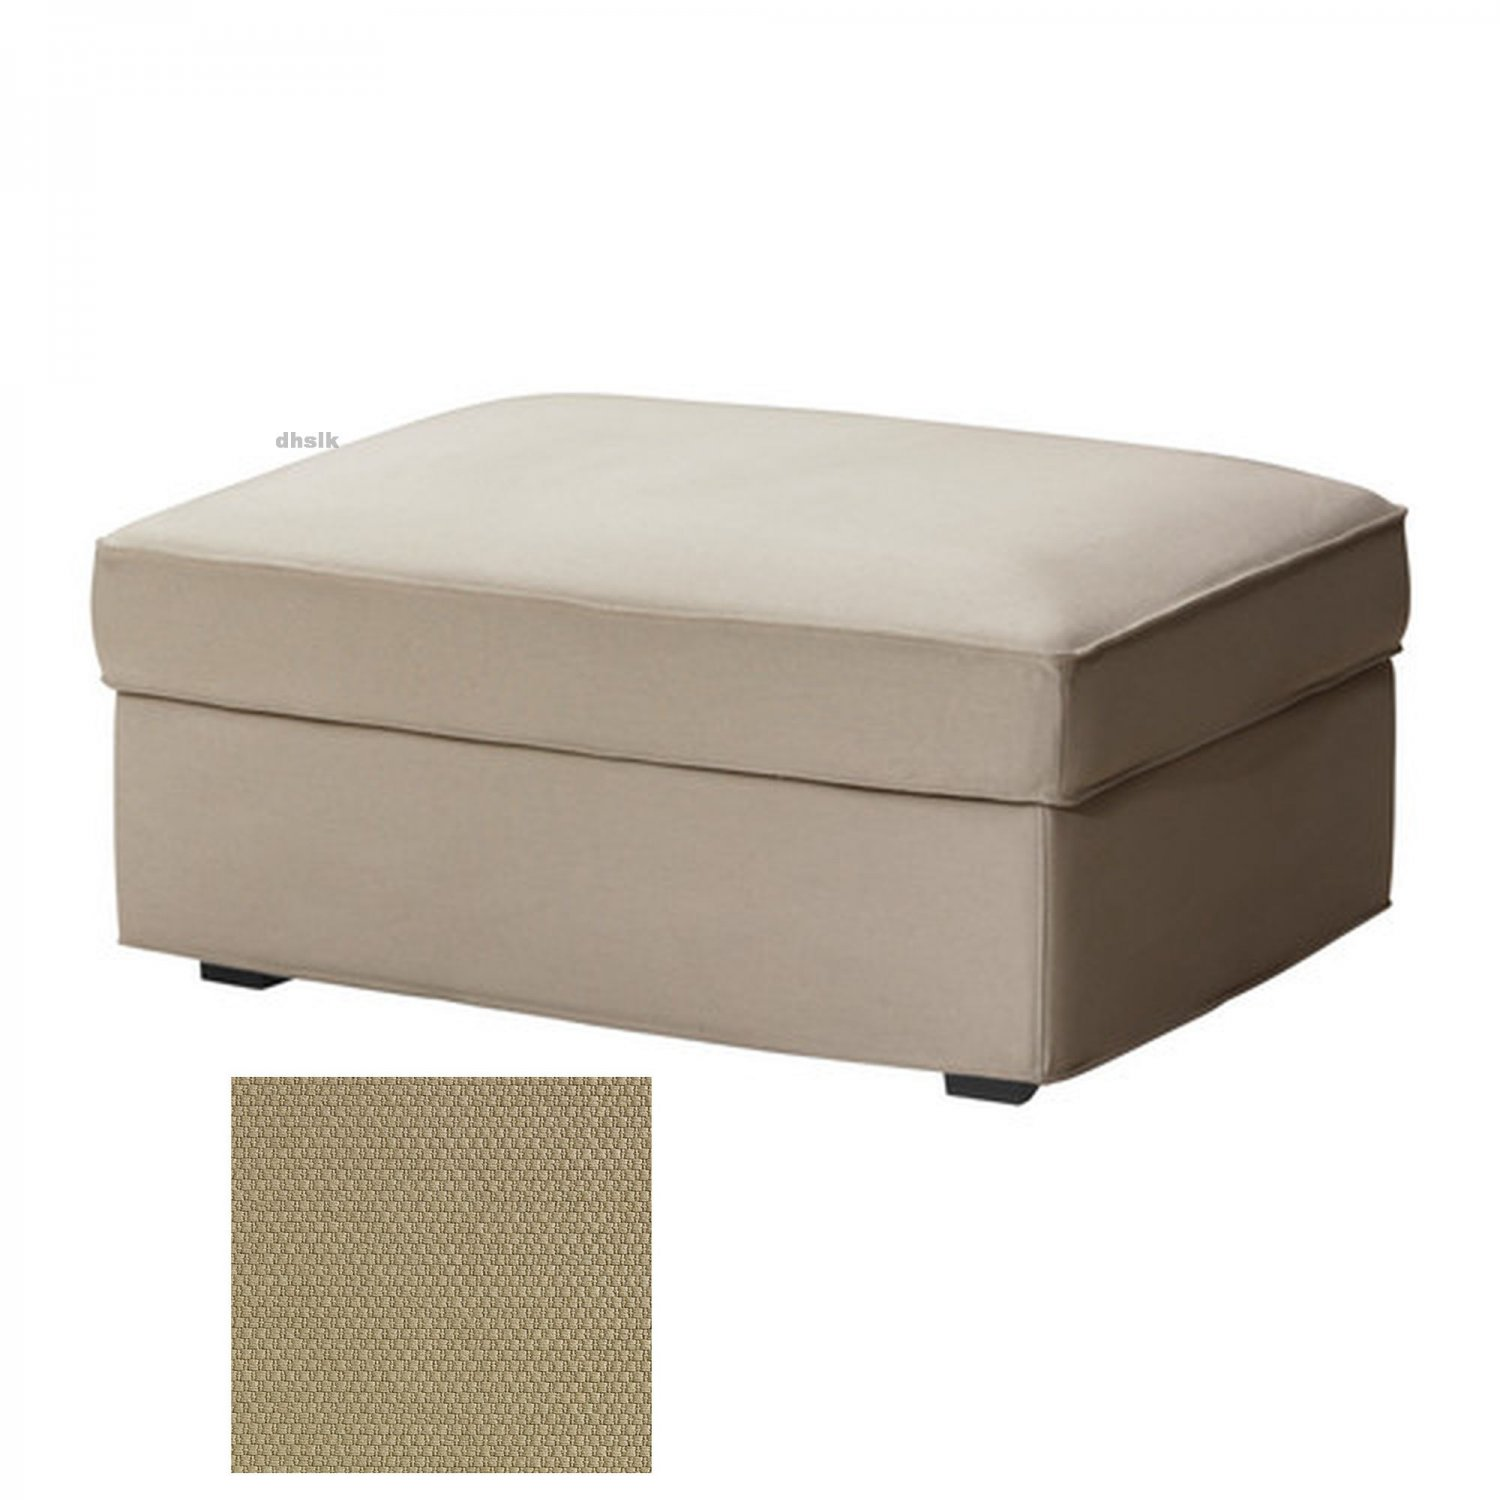 ikea kivik footstool slipcover ottoman cover dansbo beige. Black Bedroom Furniture Sets. Home Design Ideas